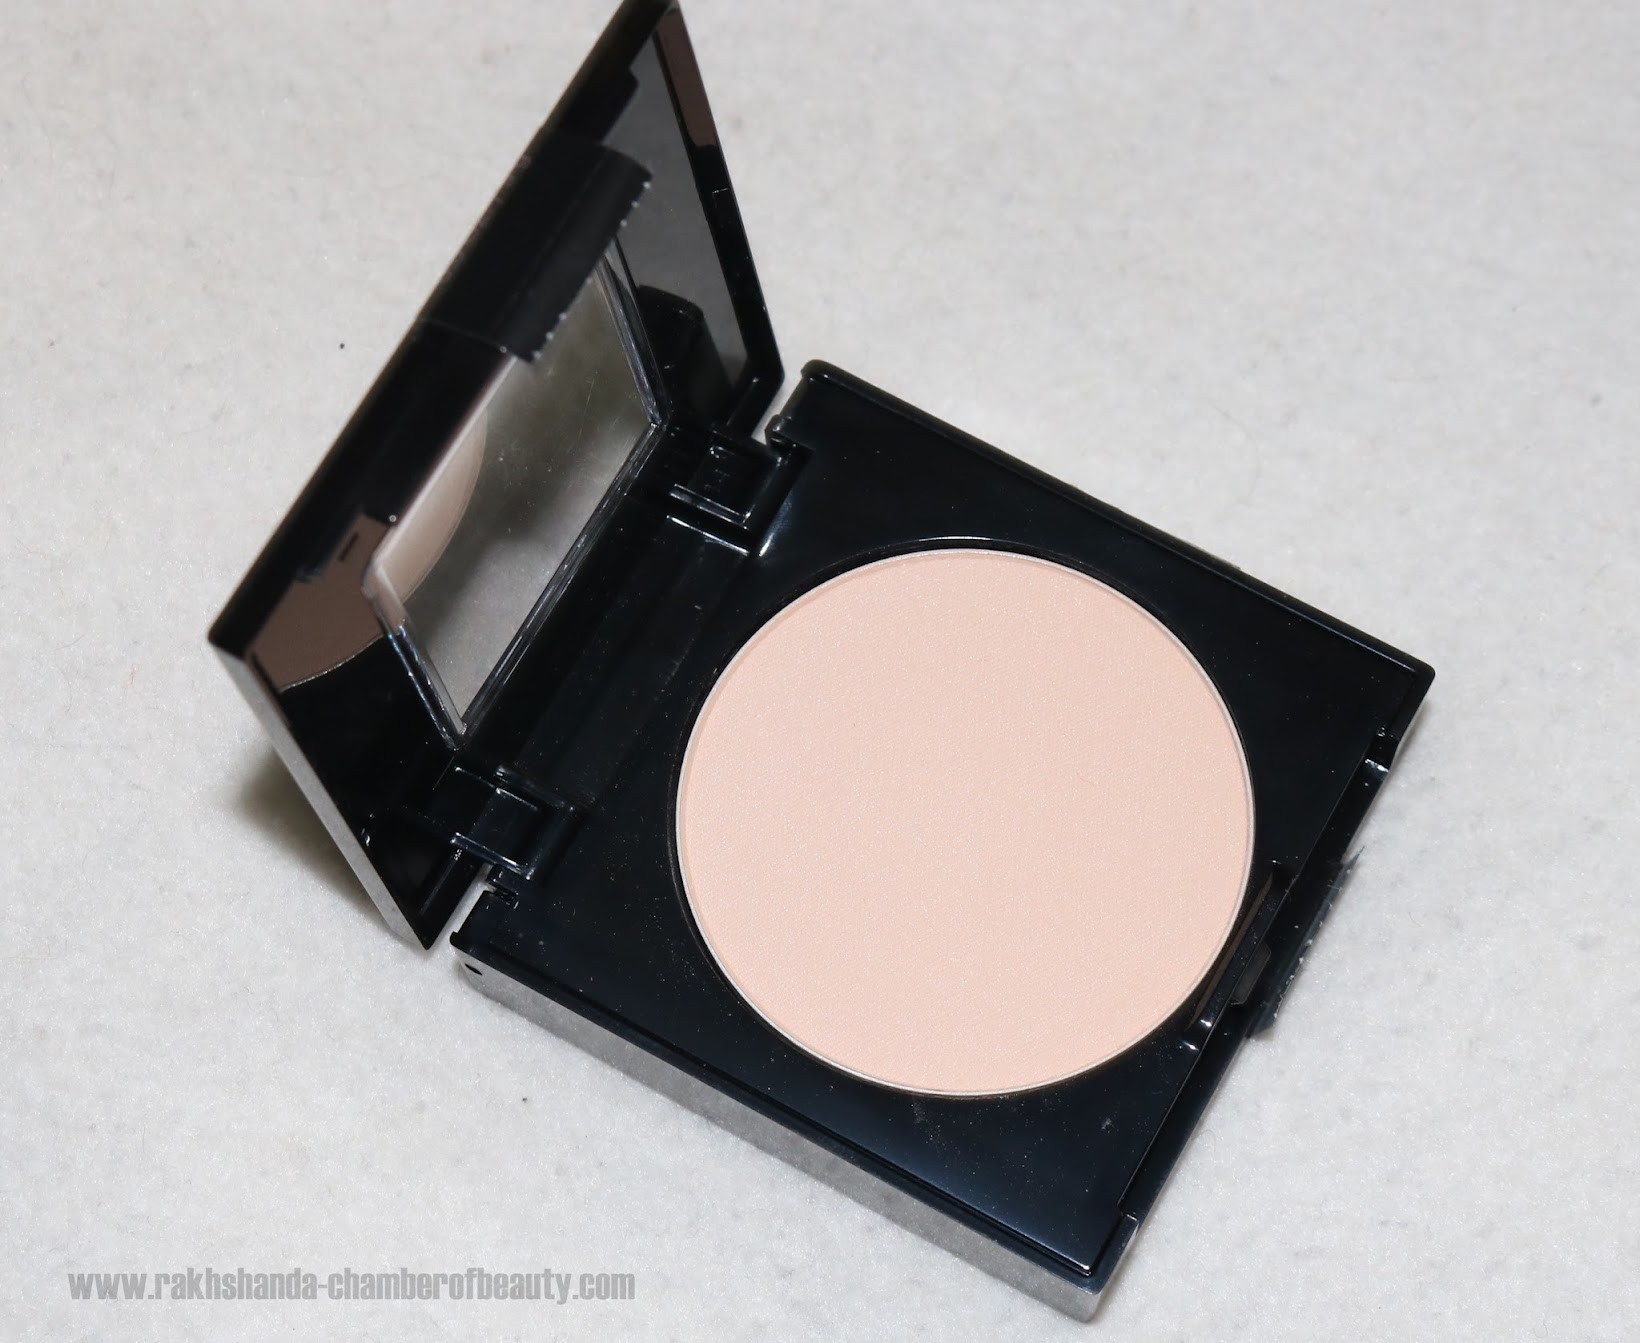 Maybelline NY Fit Me Pressed powder review,swatches and price in India, Maybelline NY, best and affordable pressed powders in India,